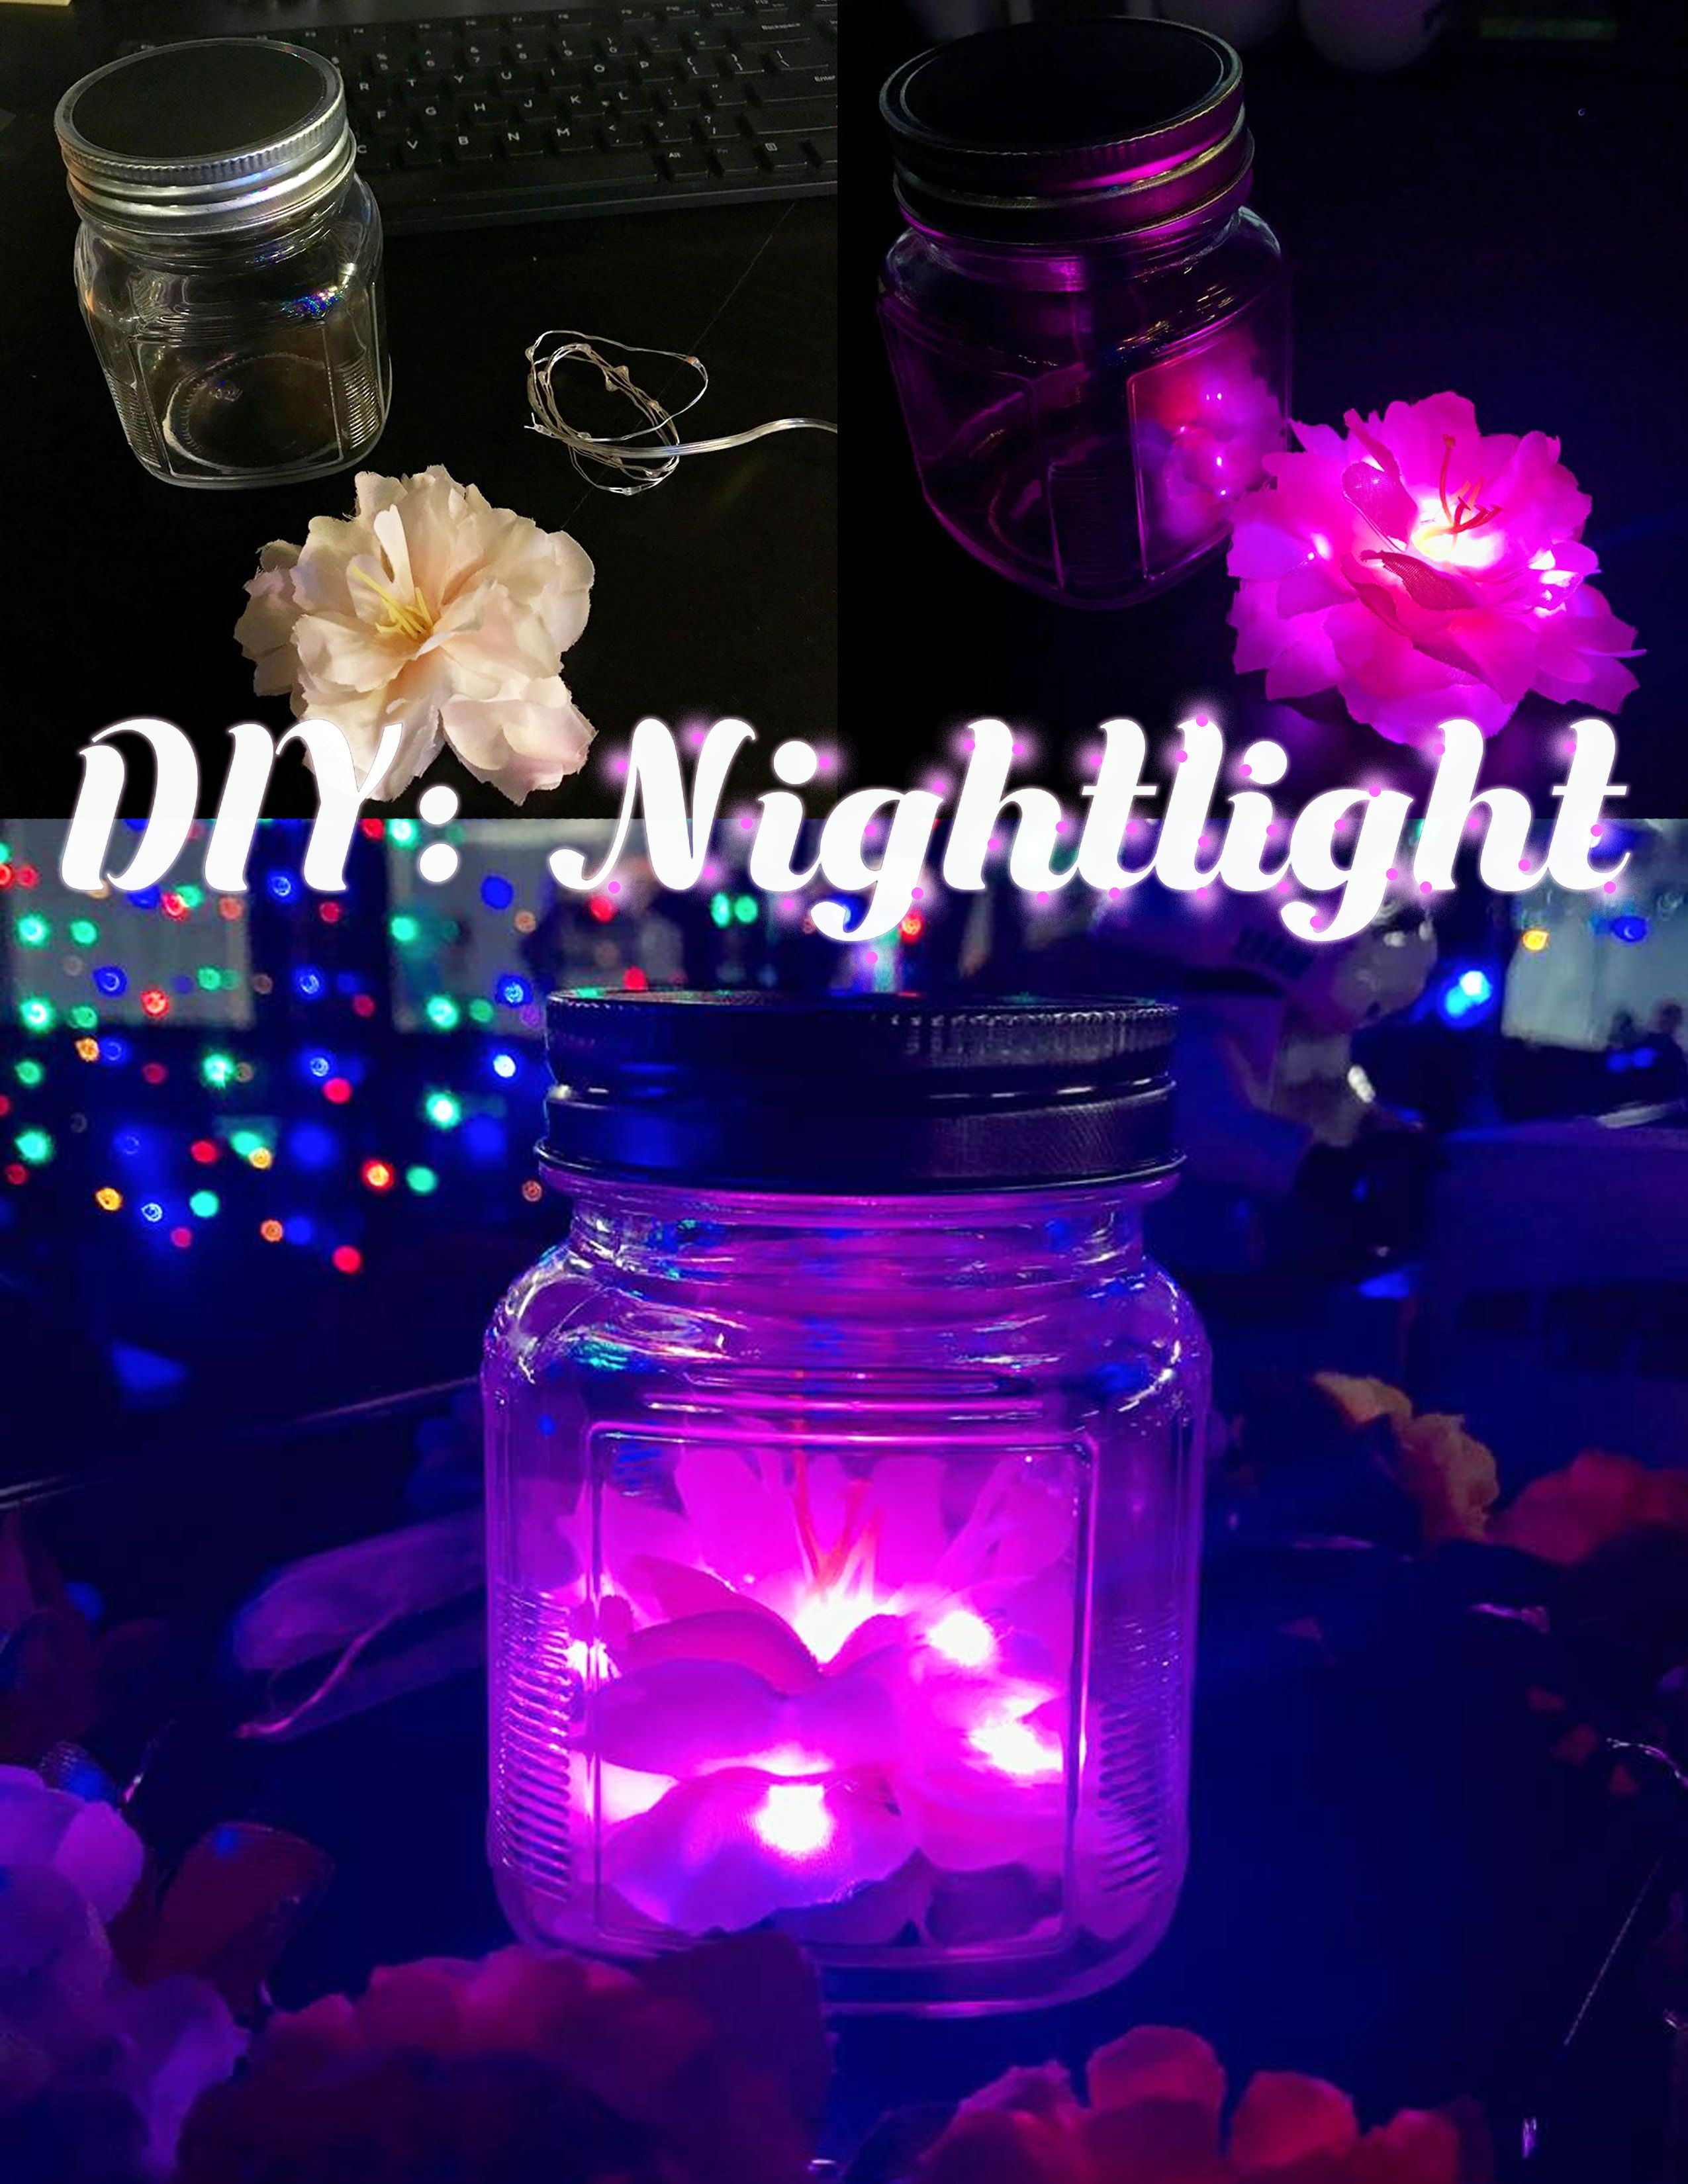 Creating your own unique nightlight is easy